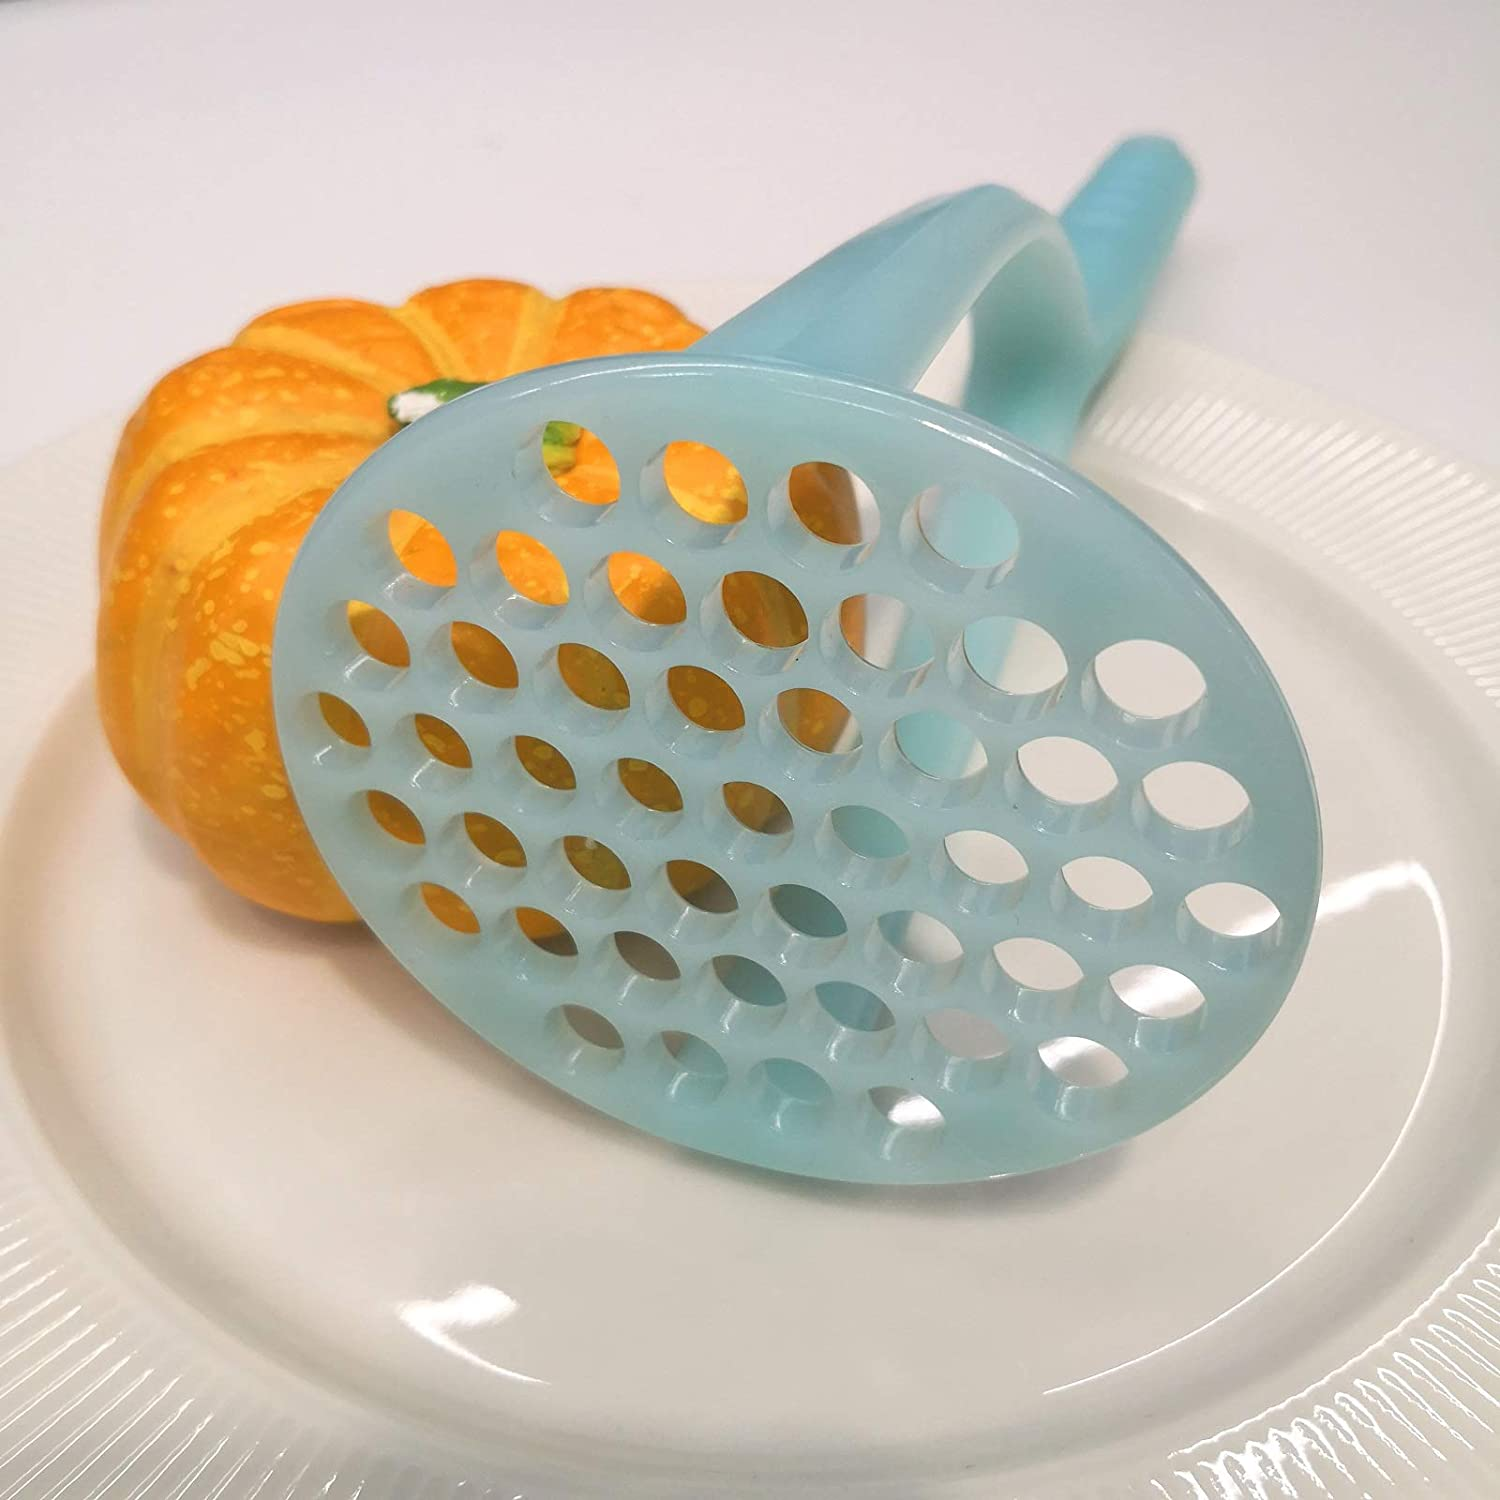 Blue FLYINGSEA Potato Masher,Nylon Potato Masher,Safe For Non-Stick Cookware Cooking and Kitchen Gadget.